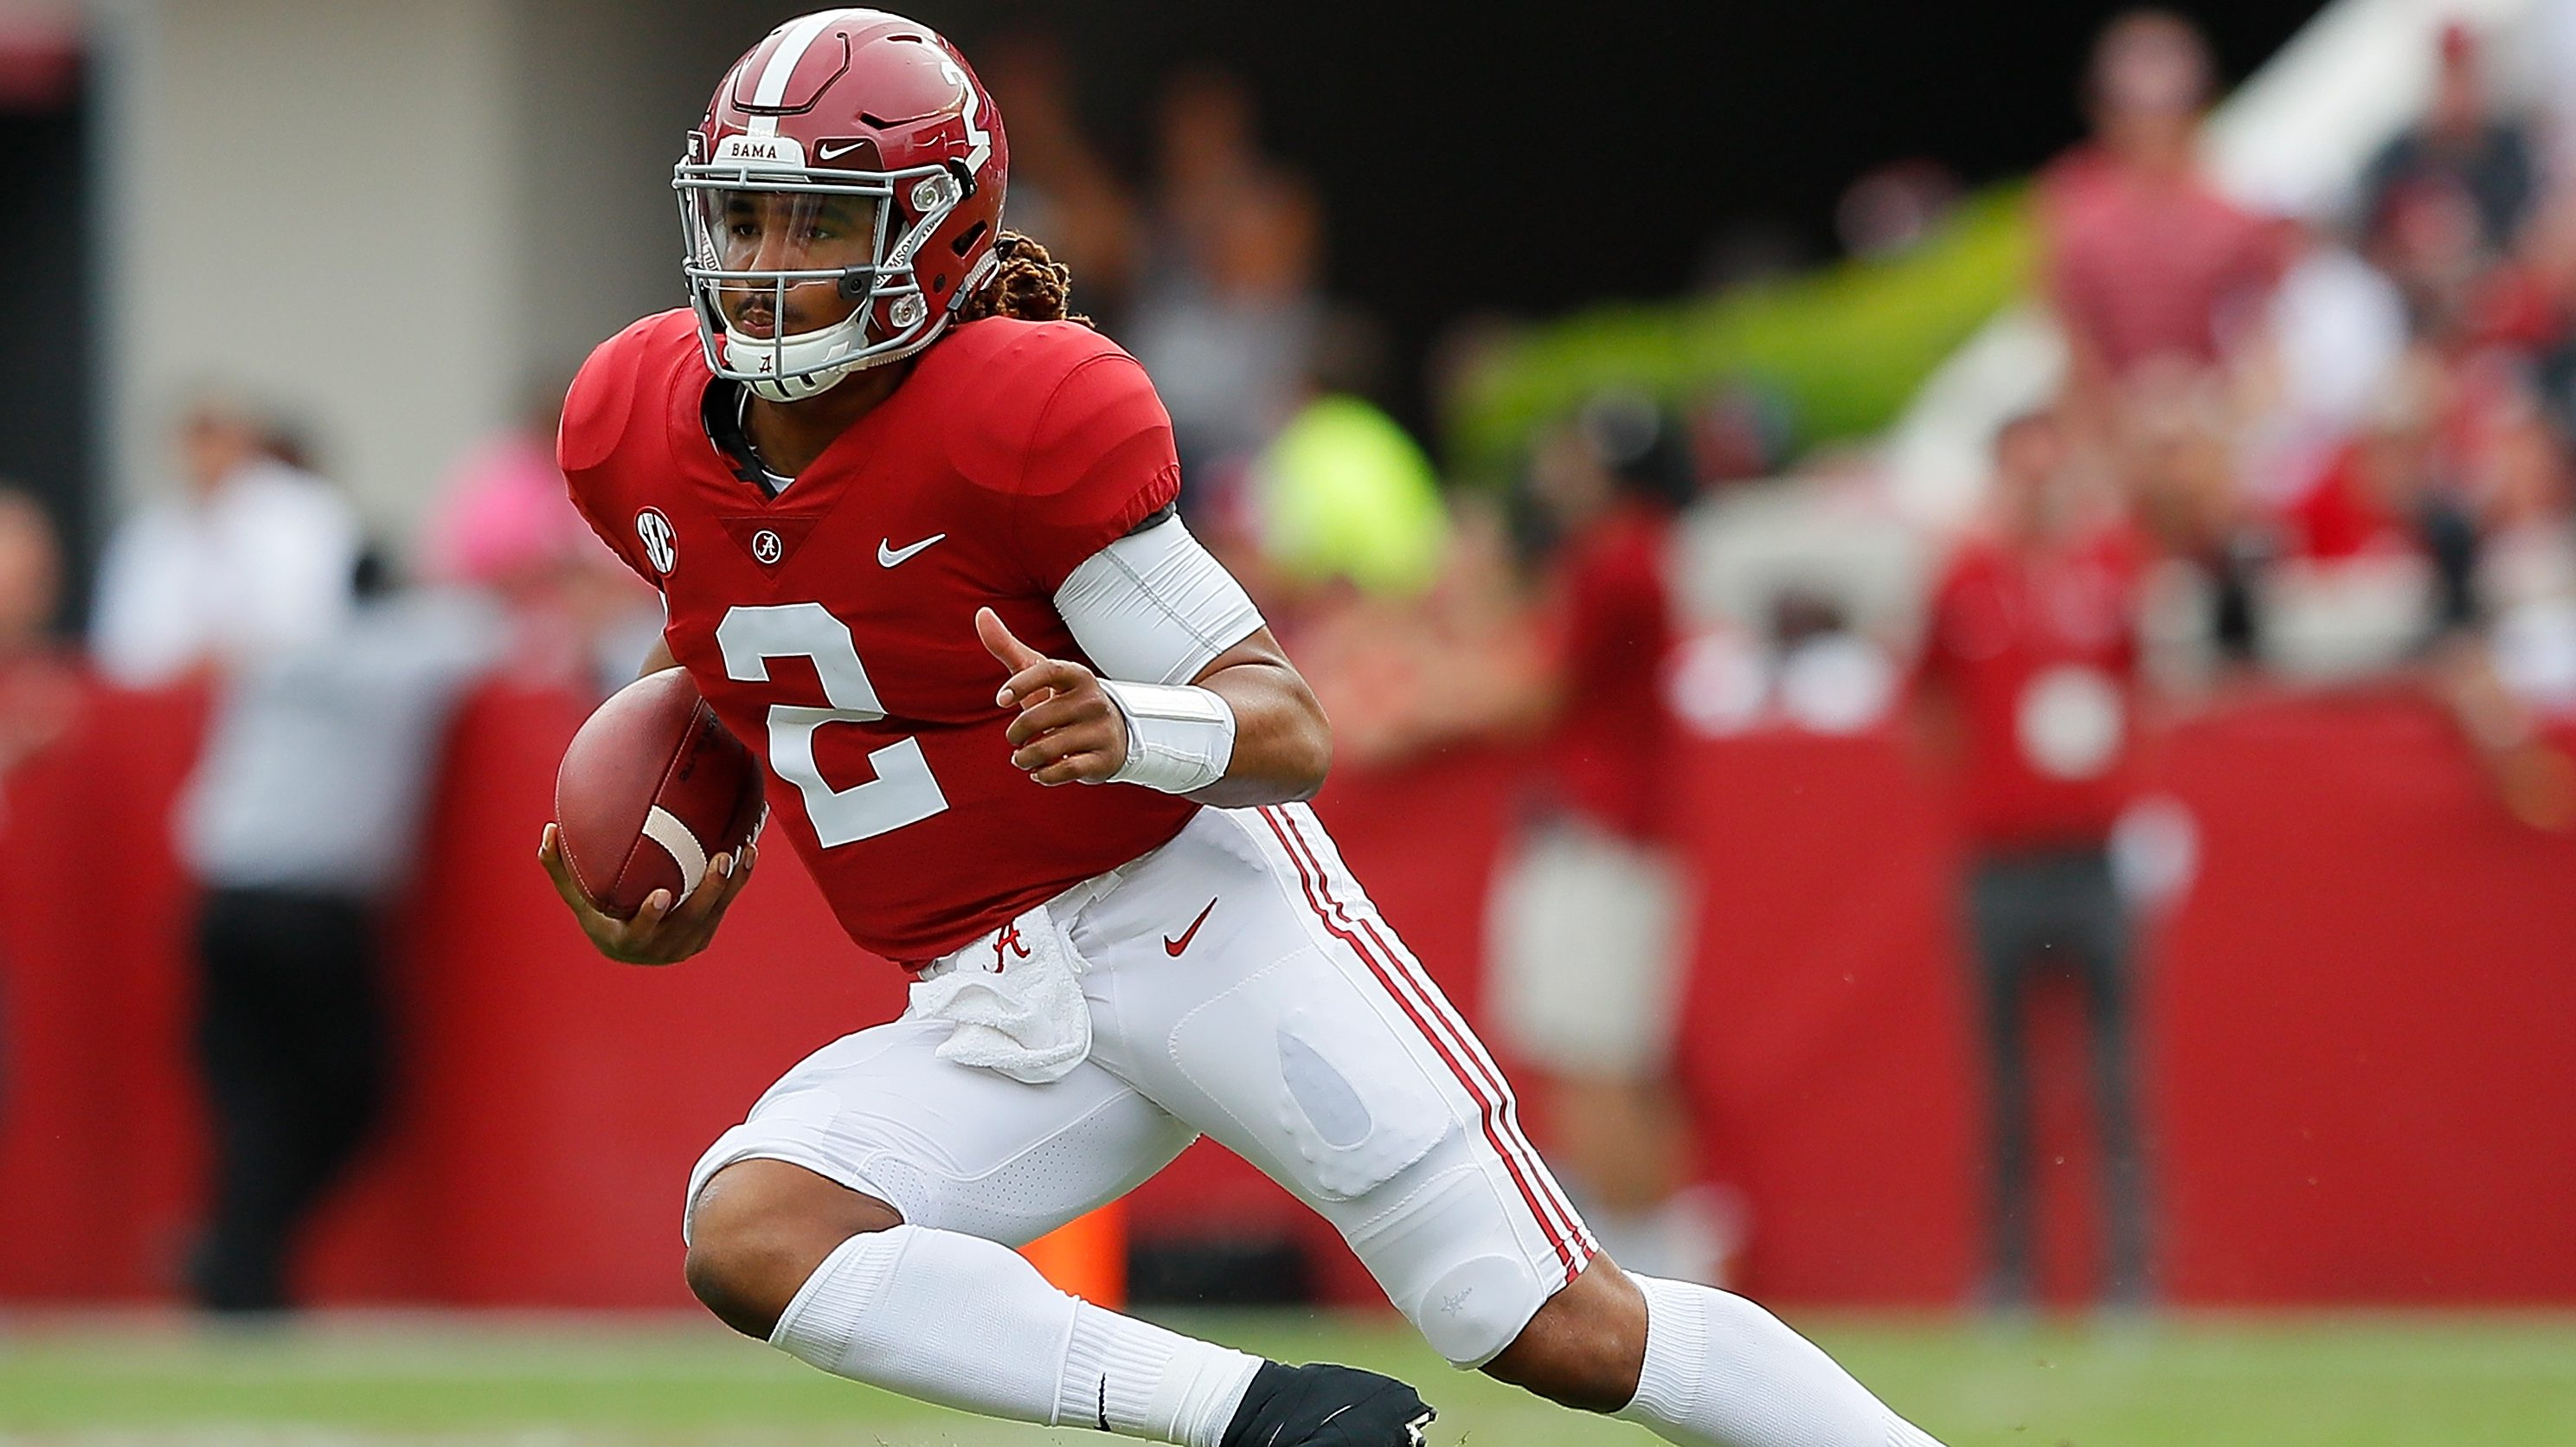 Alabama-LSU Live Stream: How to Watch Free Without Cable ...